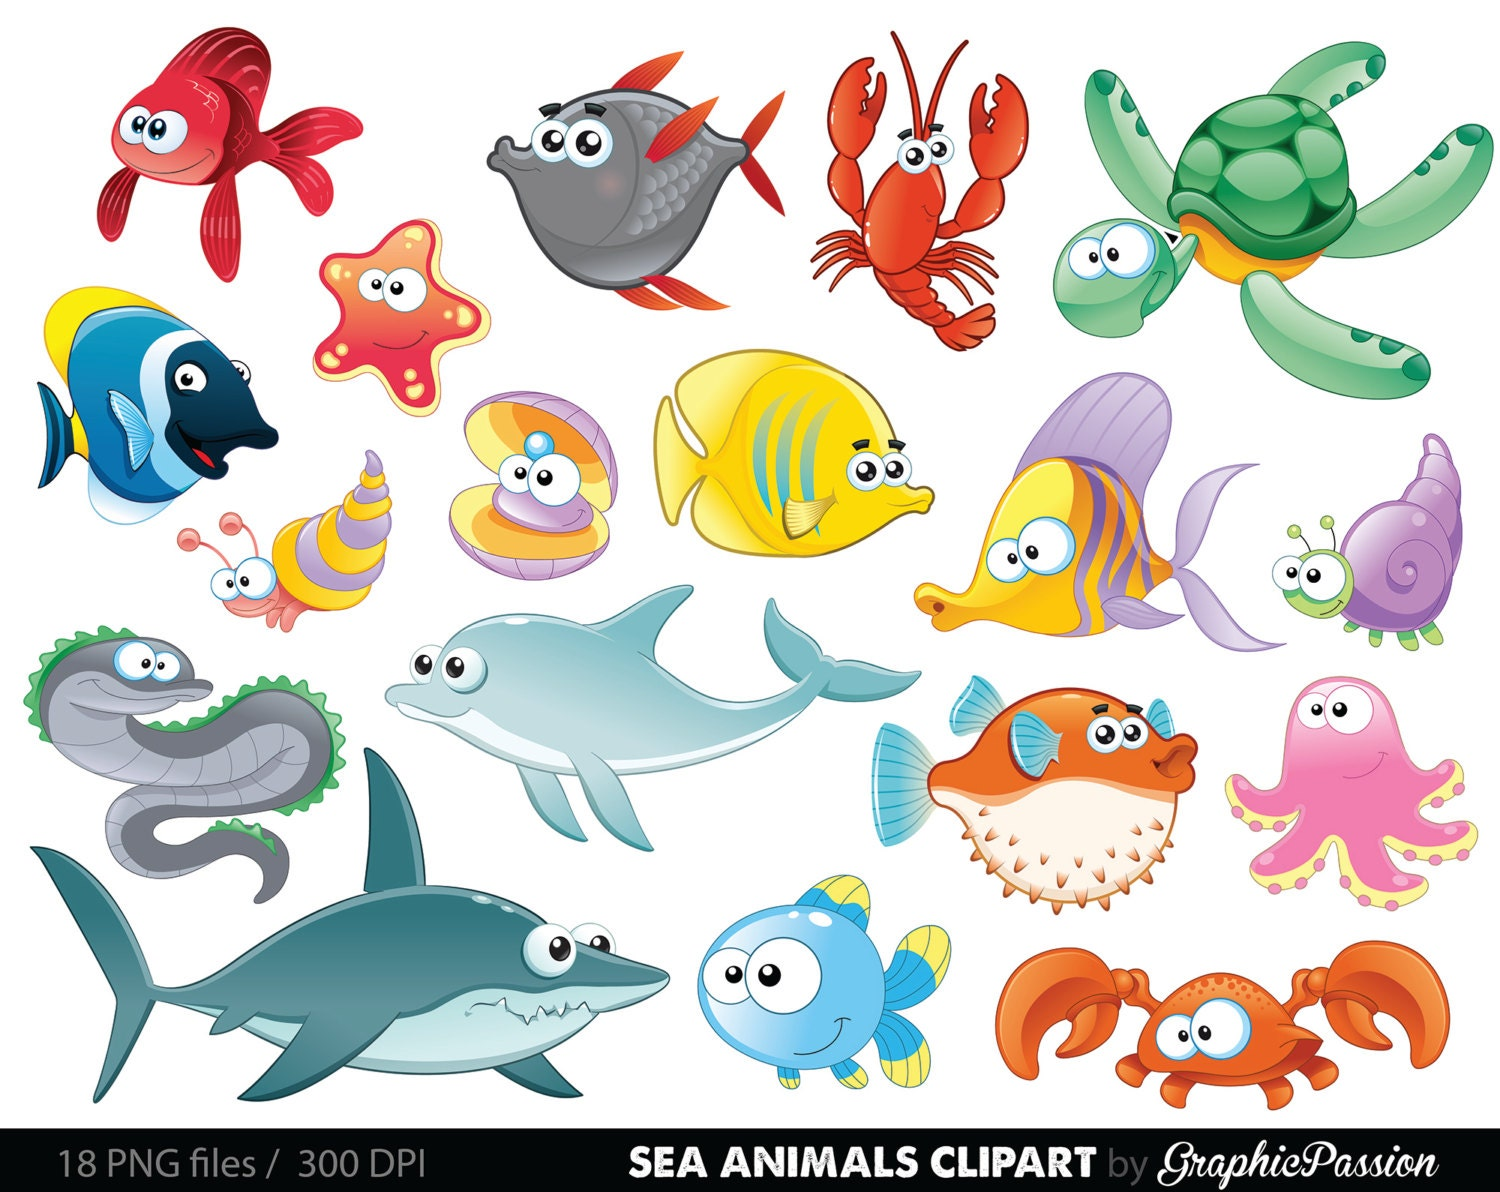 Clip Art Sea Creatures Clipart sea creature clipart etsy animal under the baby creatures clip art ocean graphics animals vector